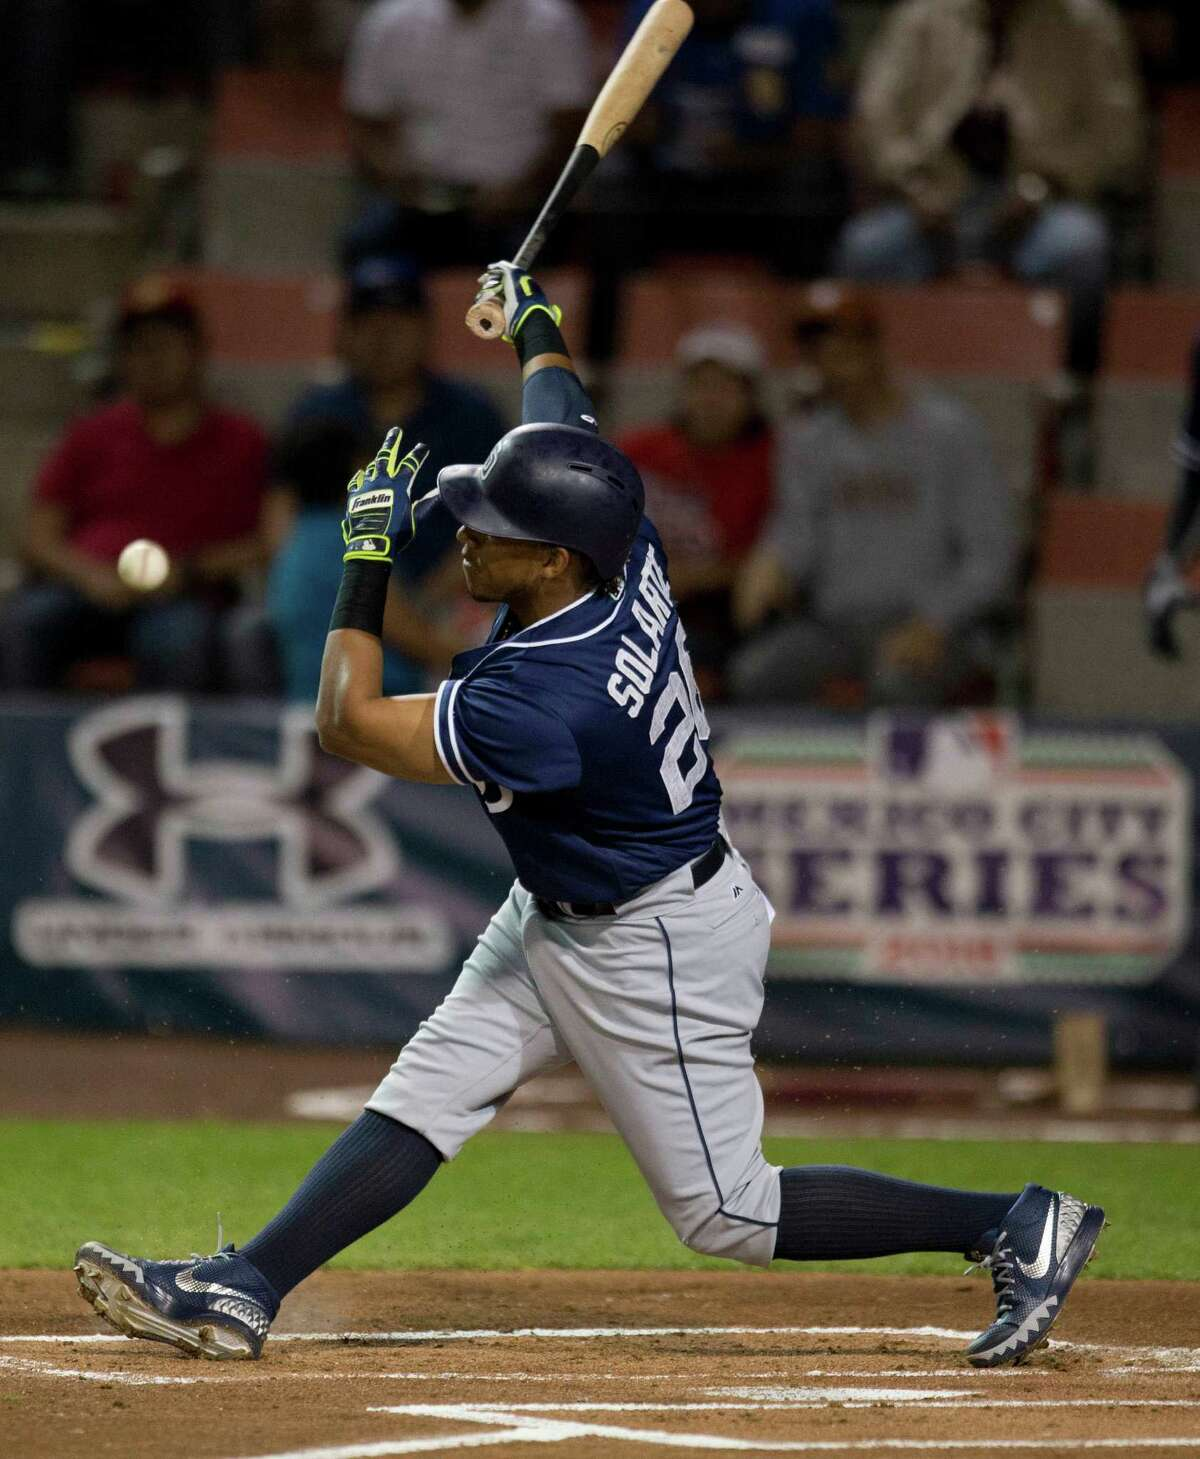 San Diego Padres' infielder Yangervis Solarte bats against the Houston Astros during a spring training baseball game in Mexico City, Saturday, March 26, 2016.